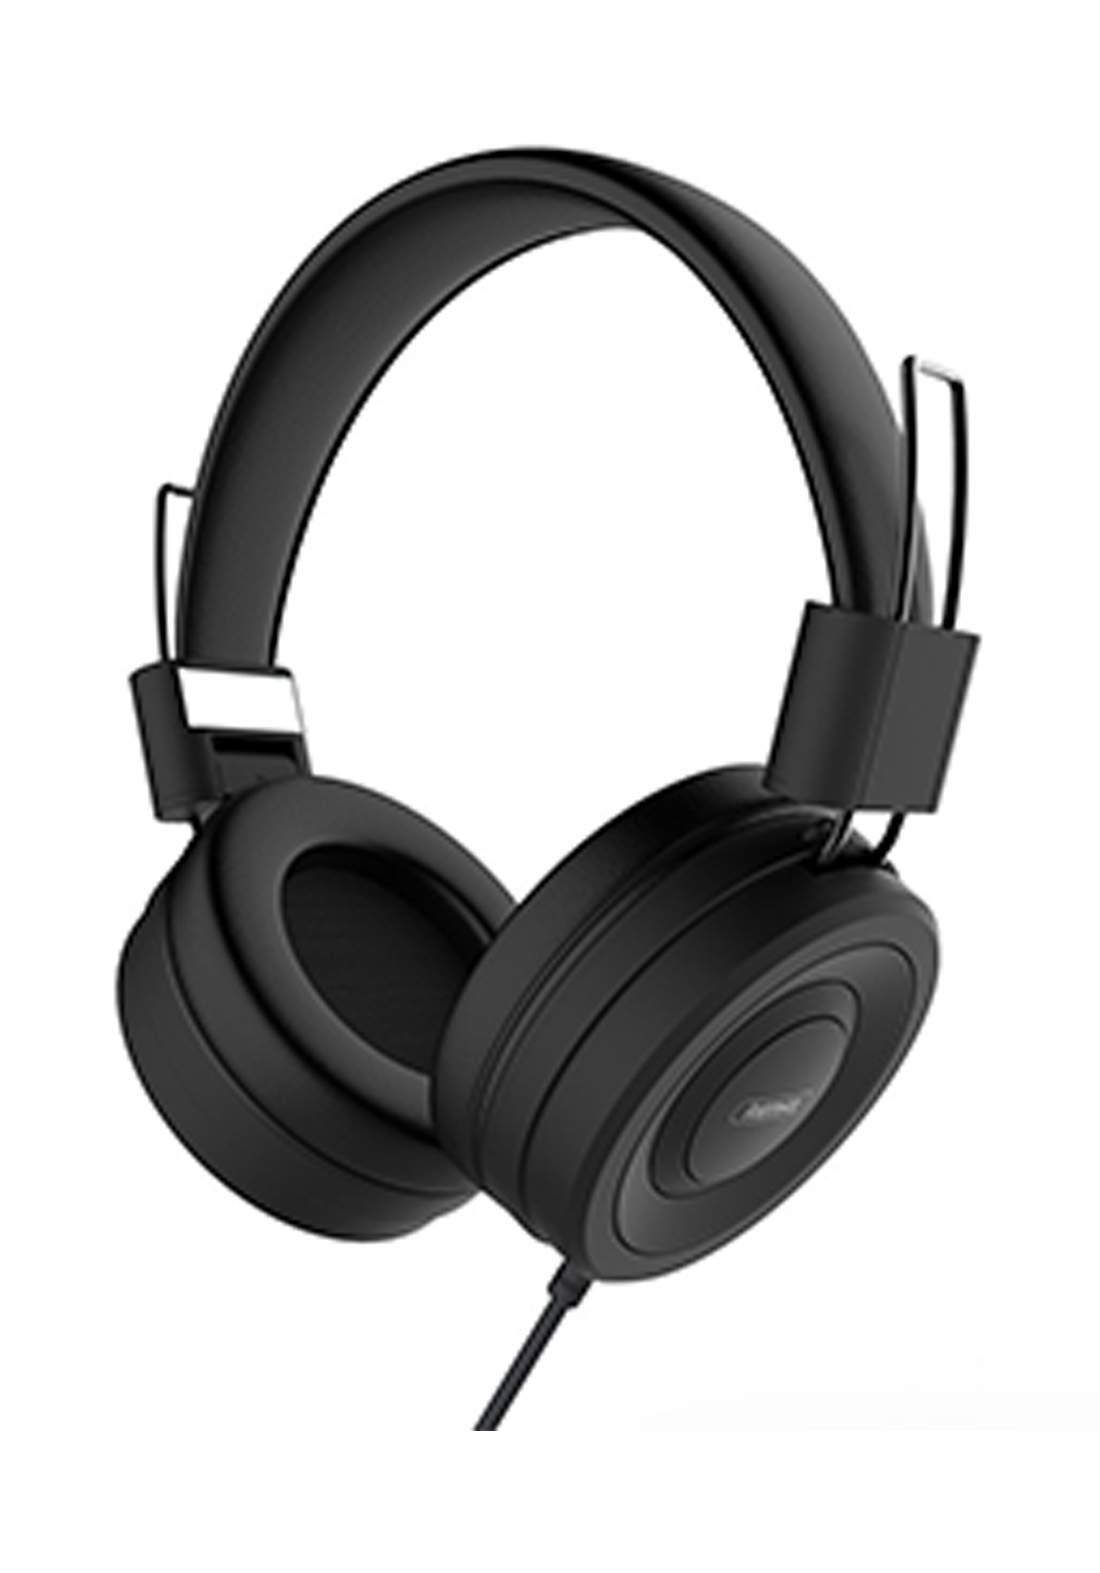 Remax Original RM-805 Wired Headset Music Over-ear Headphone with Microphone - Black  سماعة الرأس